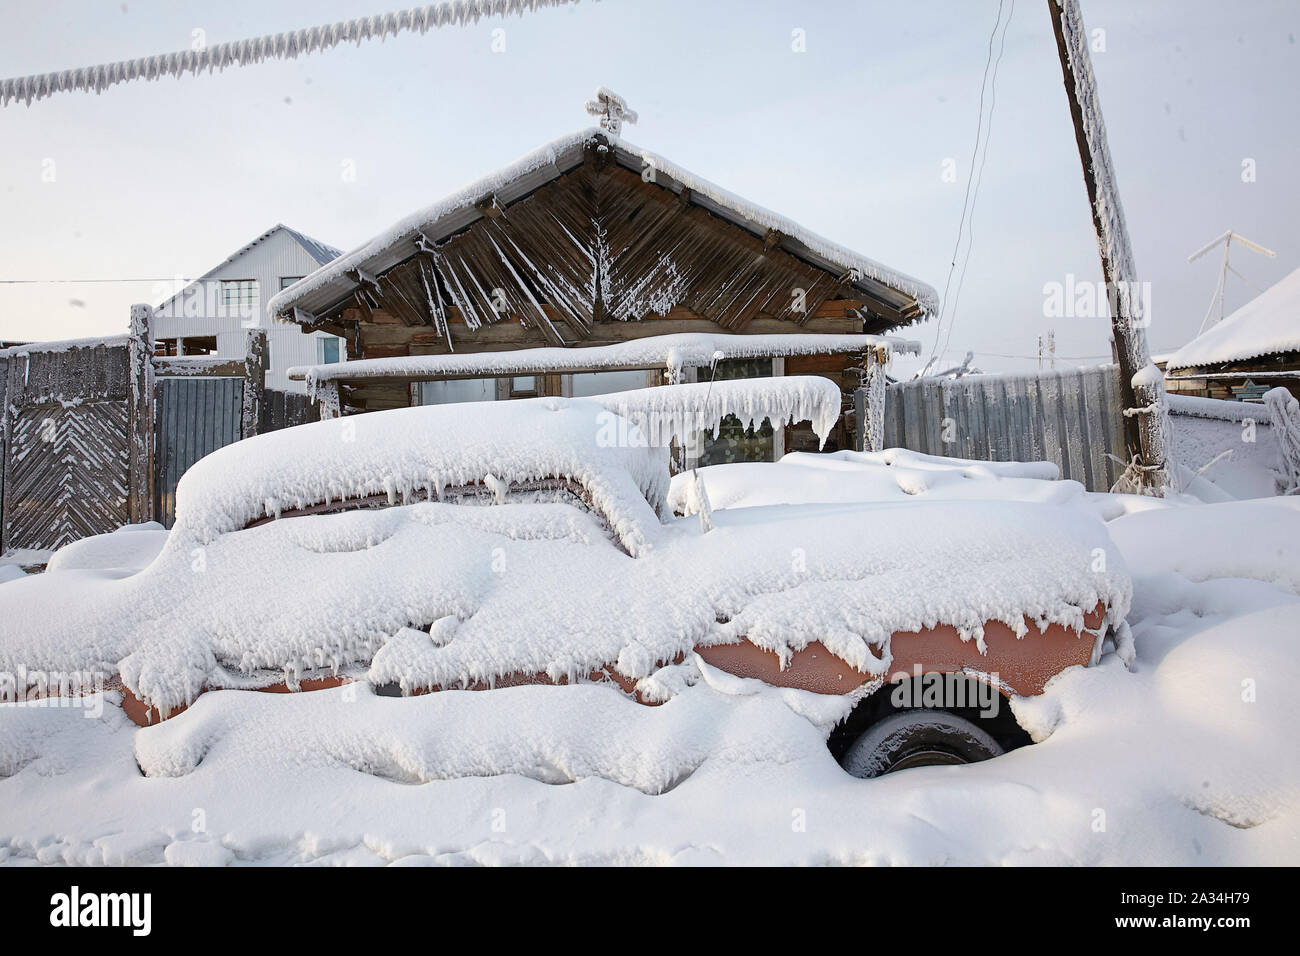 Russia Yakutsk Car covered by snow -43 degrees celcius 1-02-2013 photo: Jaco Klamer Stock Photo